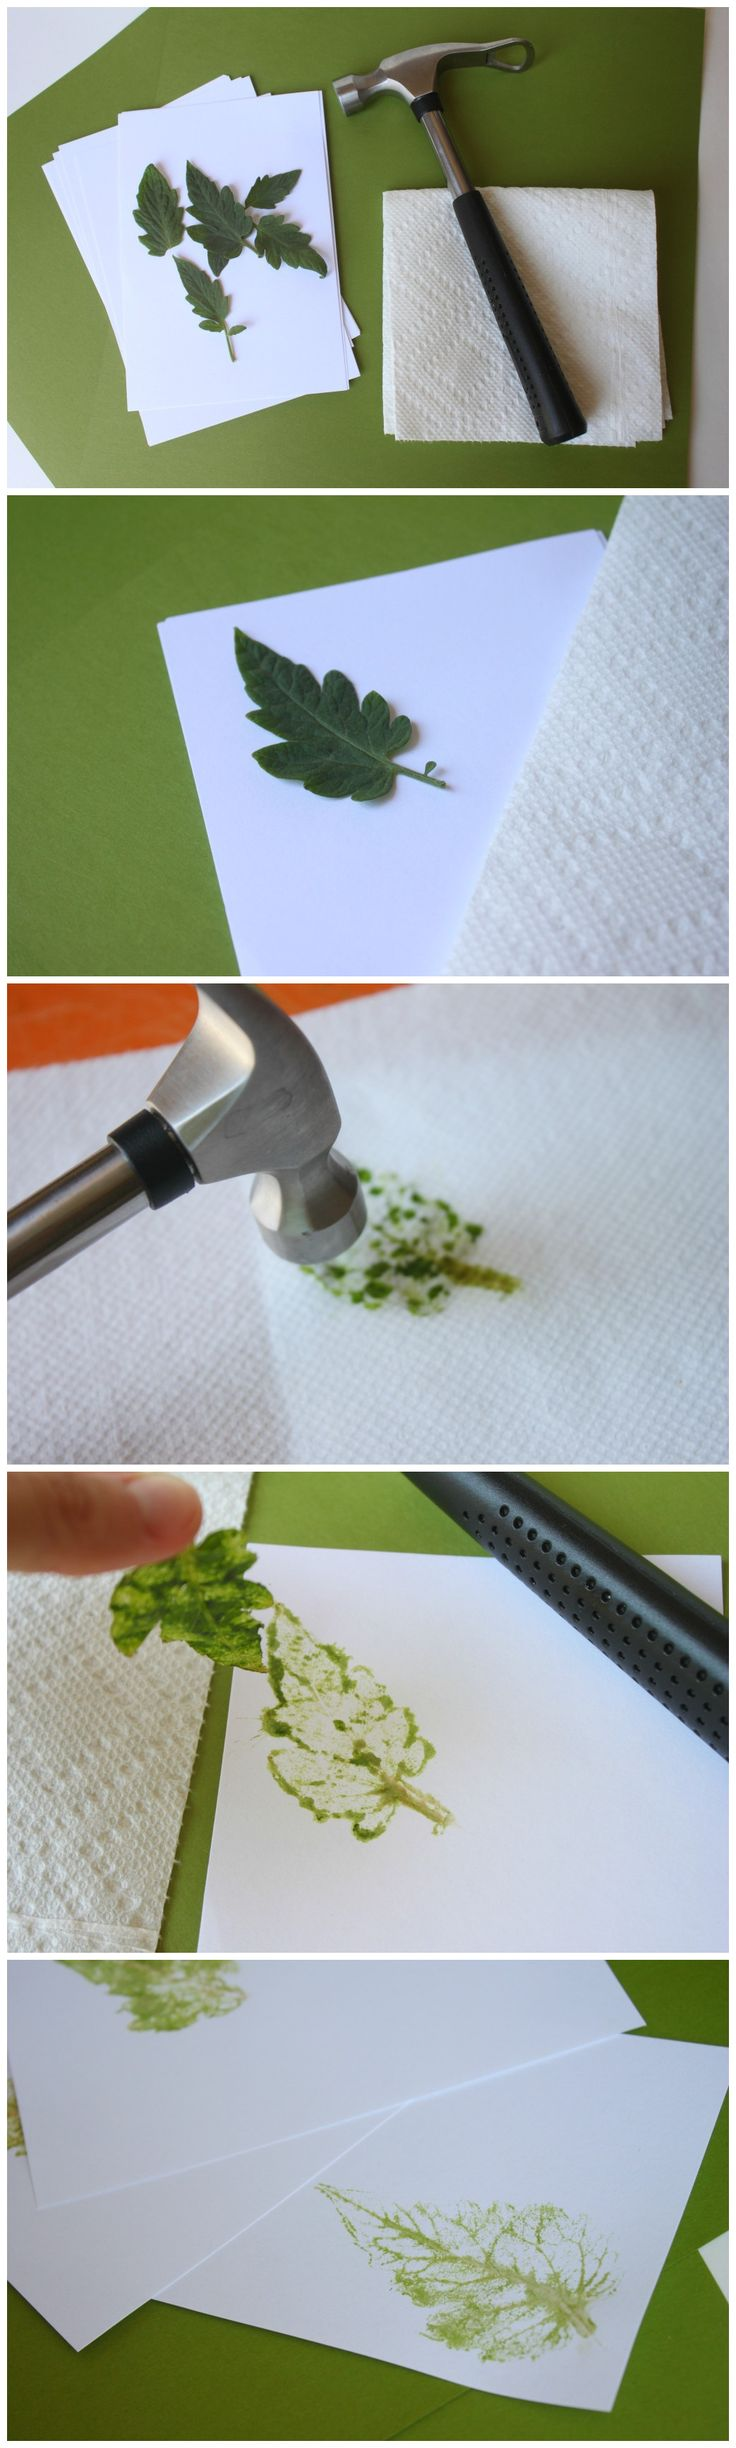 I've done this before with kids using various leaves and flowers - They love it! #diystencils